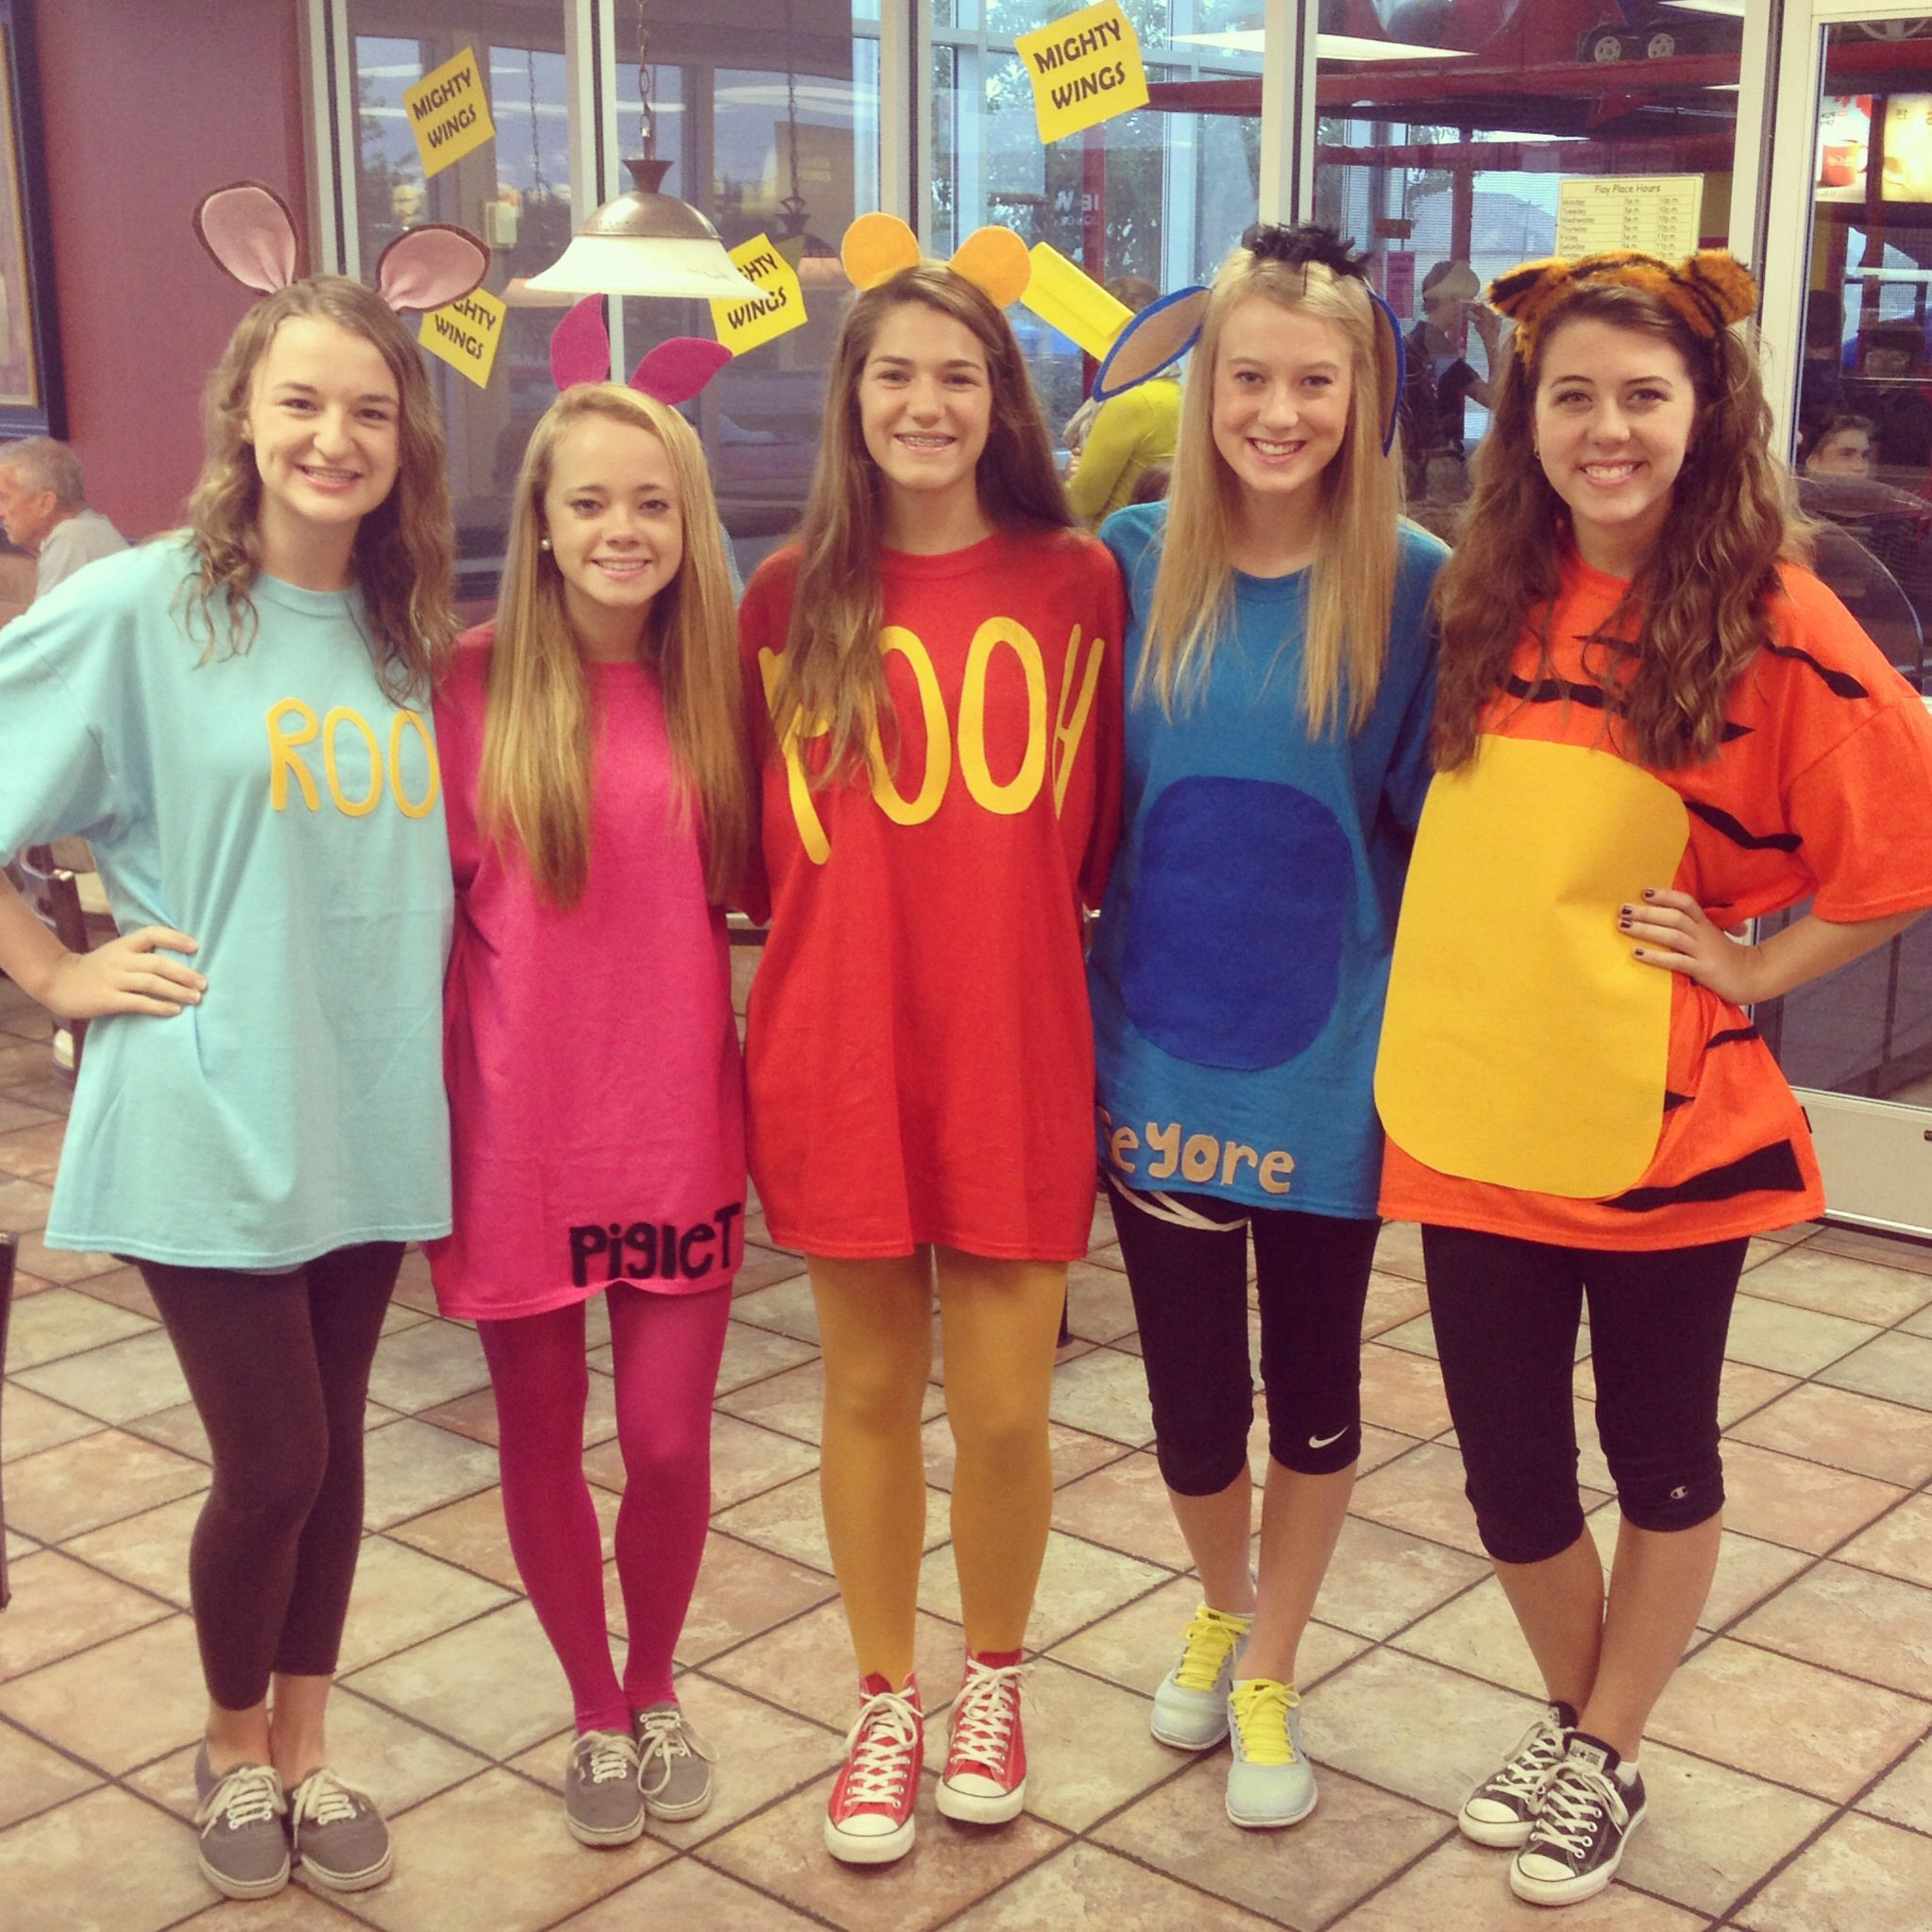 Best ideas about Winnie The Pooh Costume DIY . Save or Pin Homemade Winnie the Pooh and friends Halloween costumes Now.